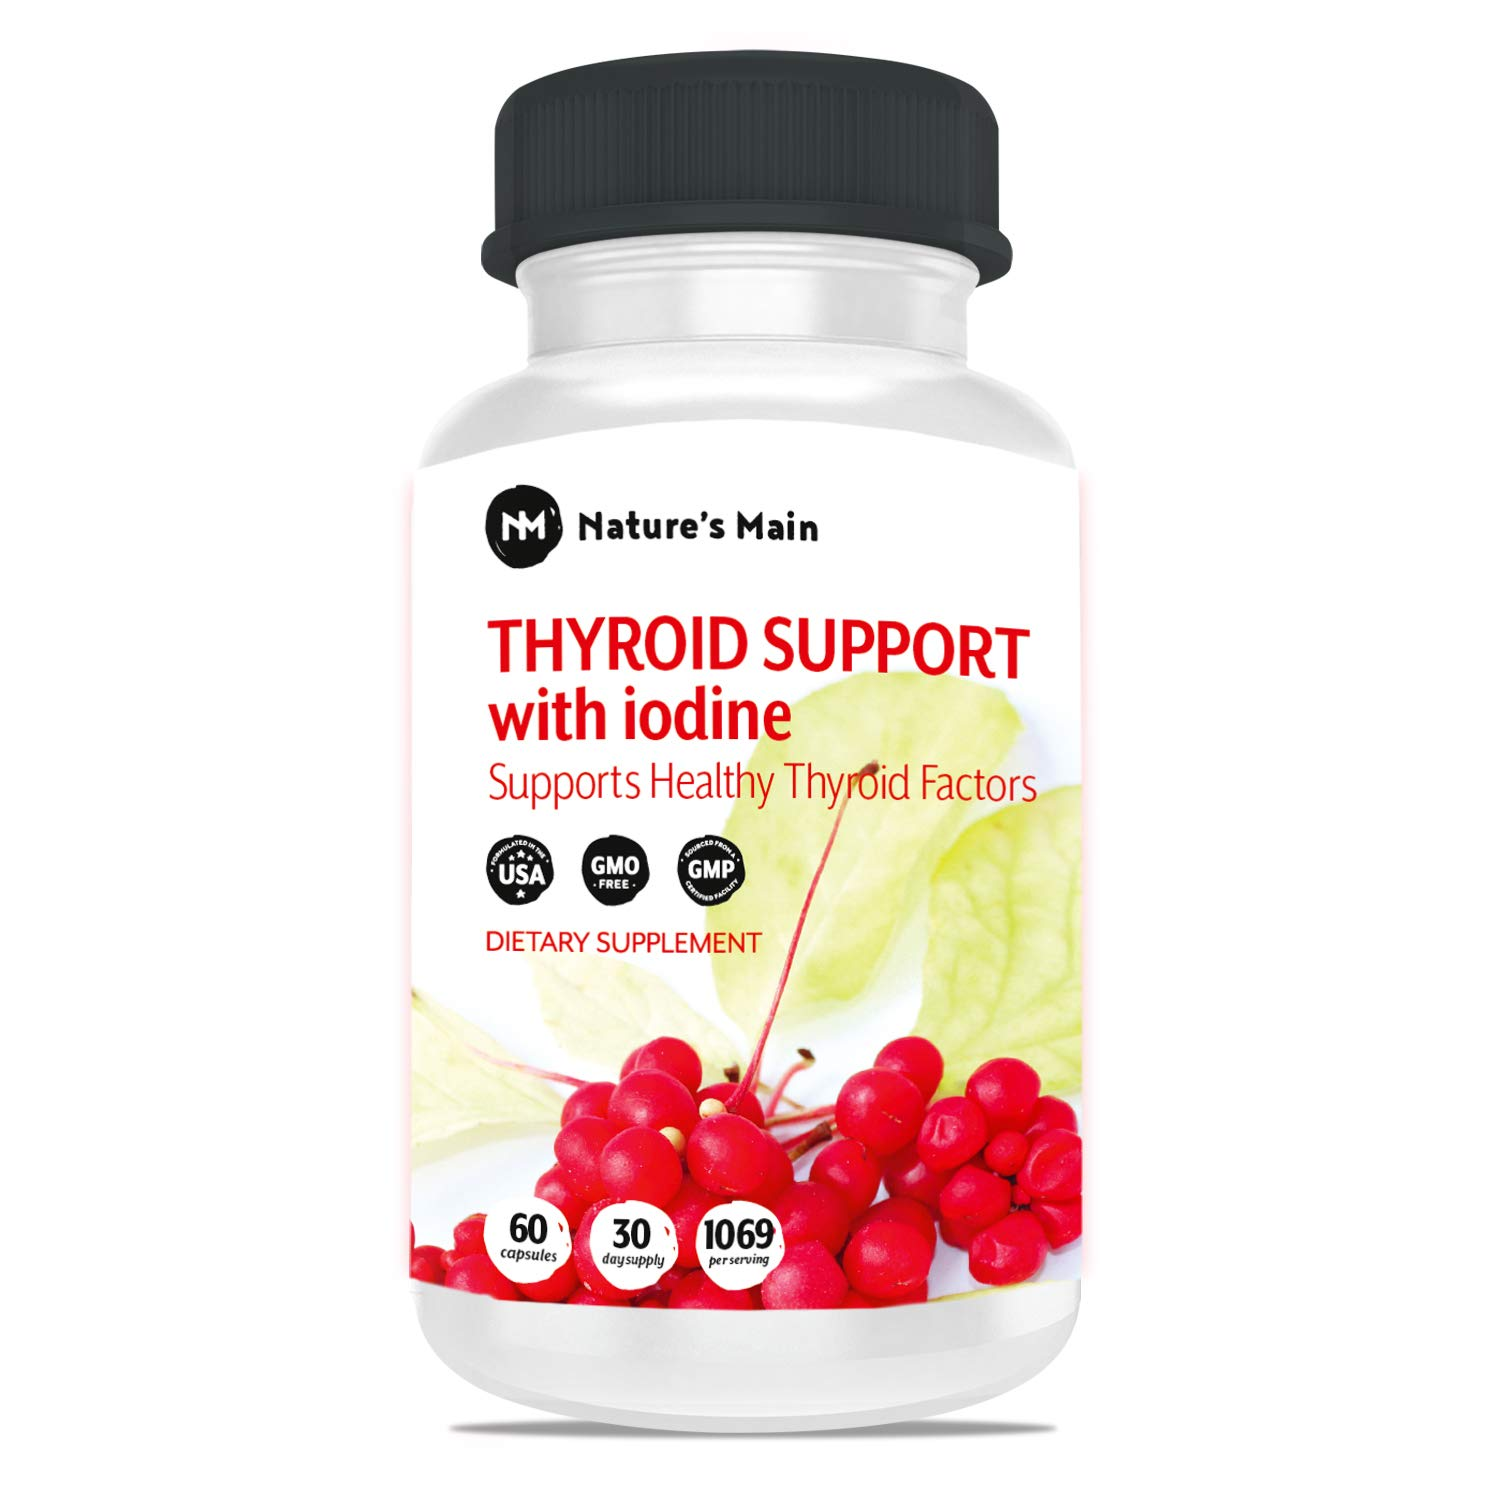 Thyroid Support Energy Pills ǀ Iodine Supplement & Metabolism Booster